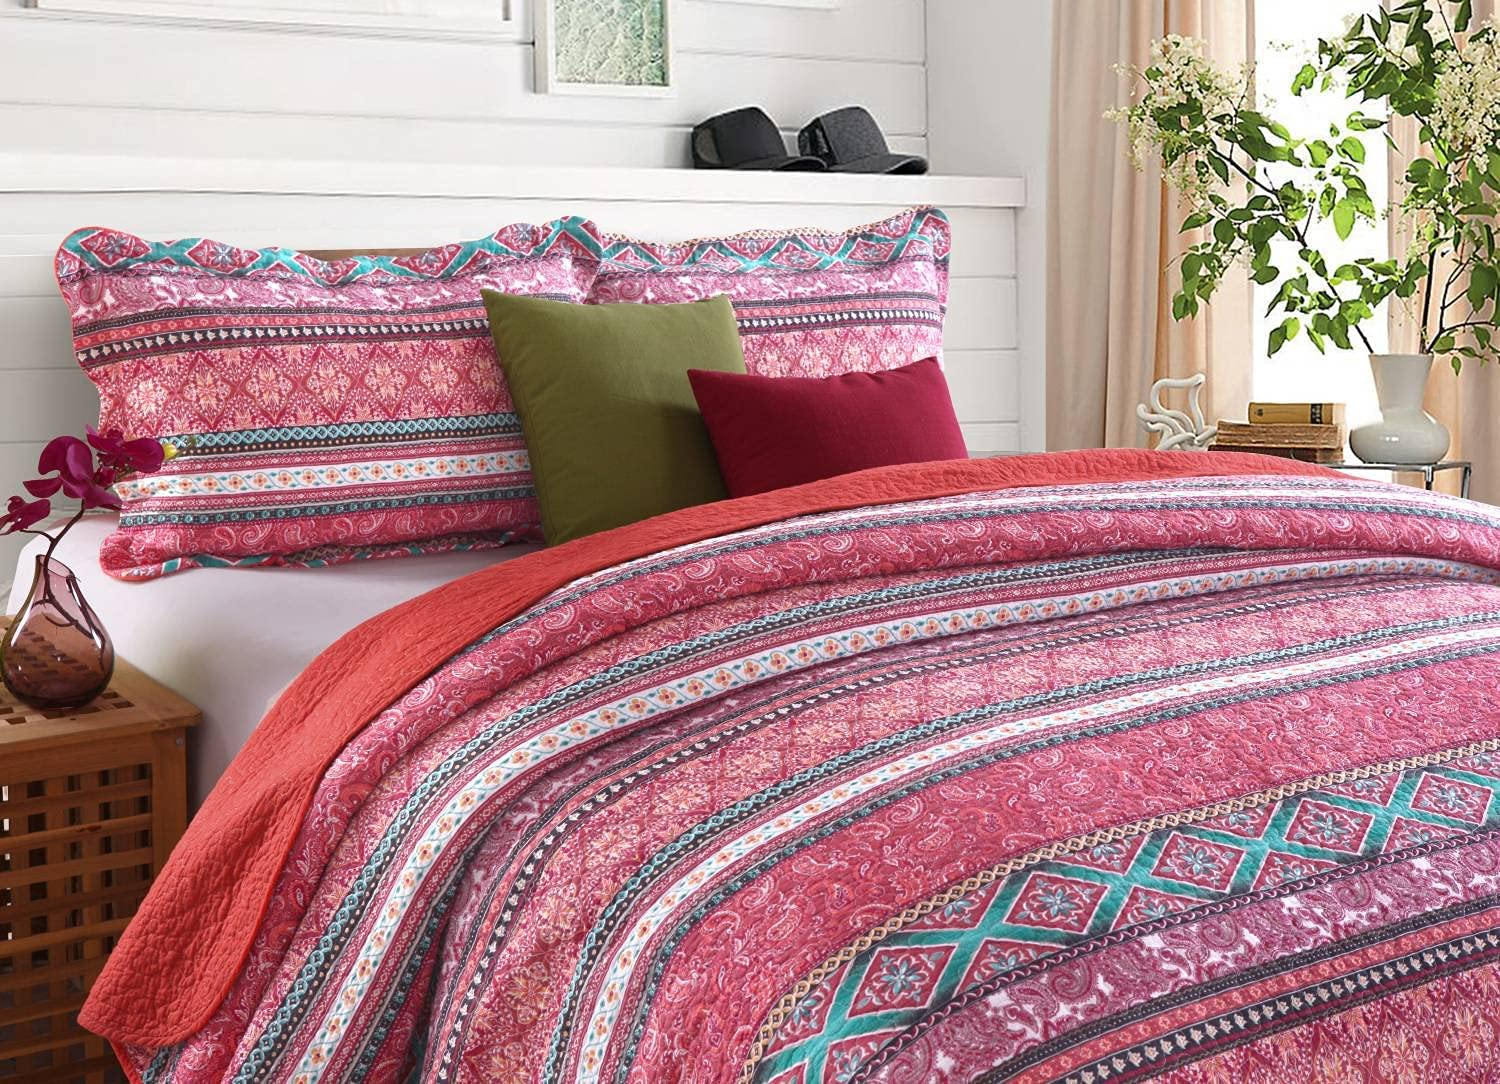 STACYPIK Bohemian Red Striped Quilt Set King Size 98x106inch,3 Piece Reversible All Season Bedspread Coverlet Set Bedding Set& Collection with Matching ,Cotton100%Floral Thick Bedspread Set